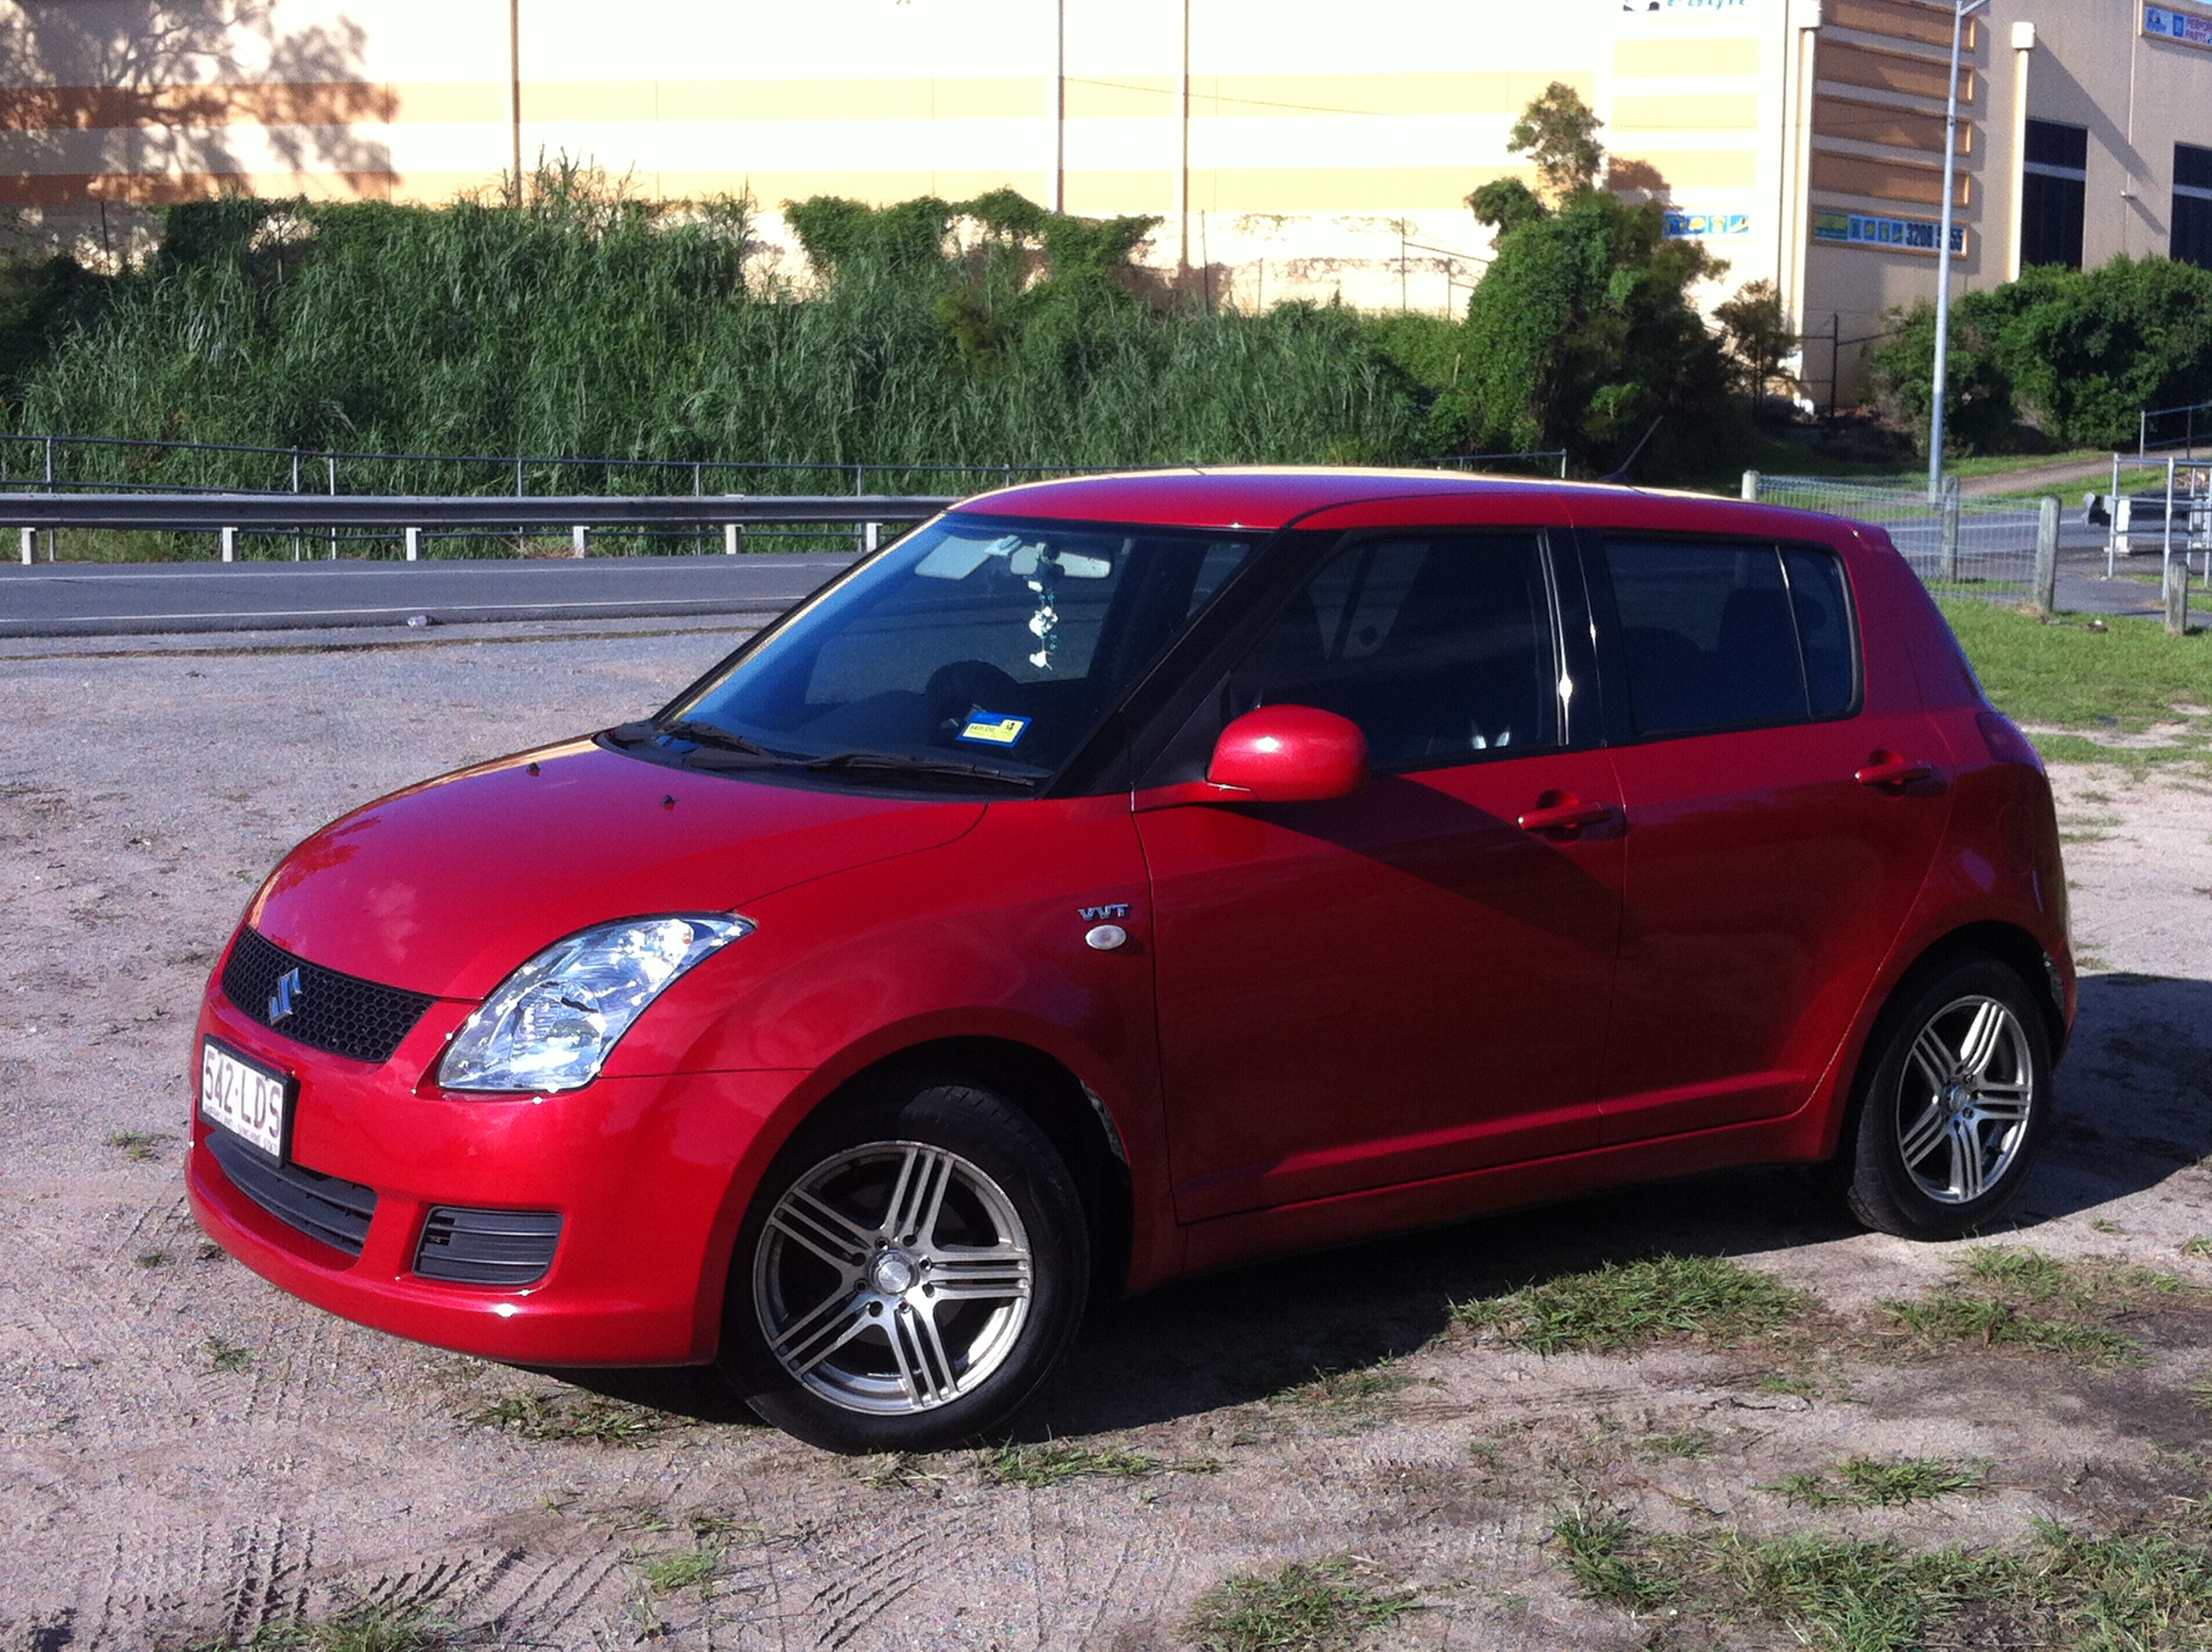 2008 suzuki swift for sale qld brisbane south. Black Bedroom Furniture Sets. Home Design Ideas